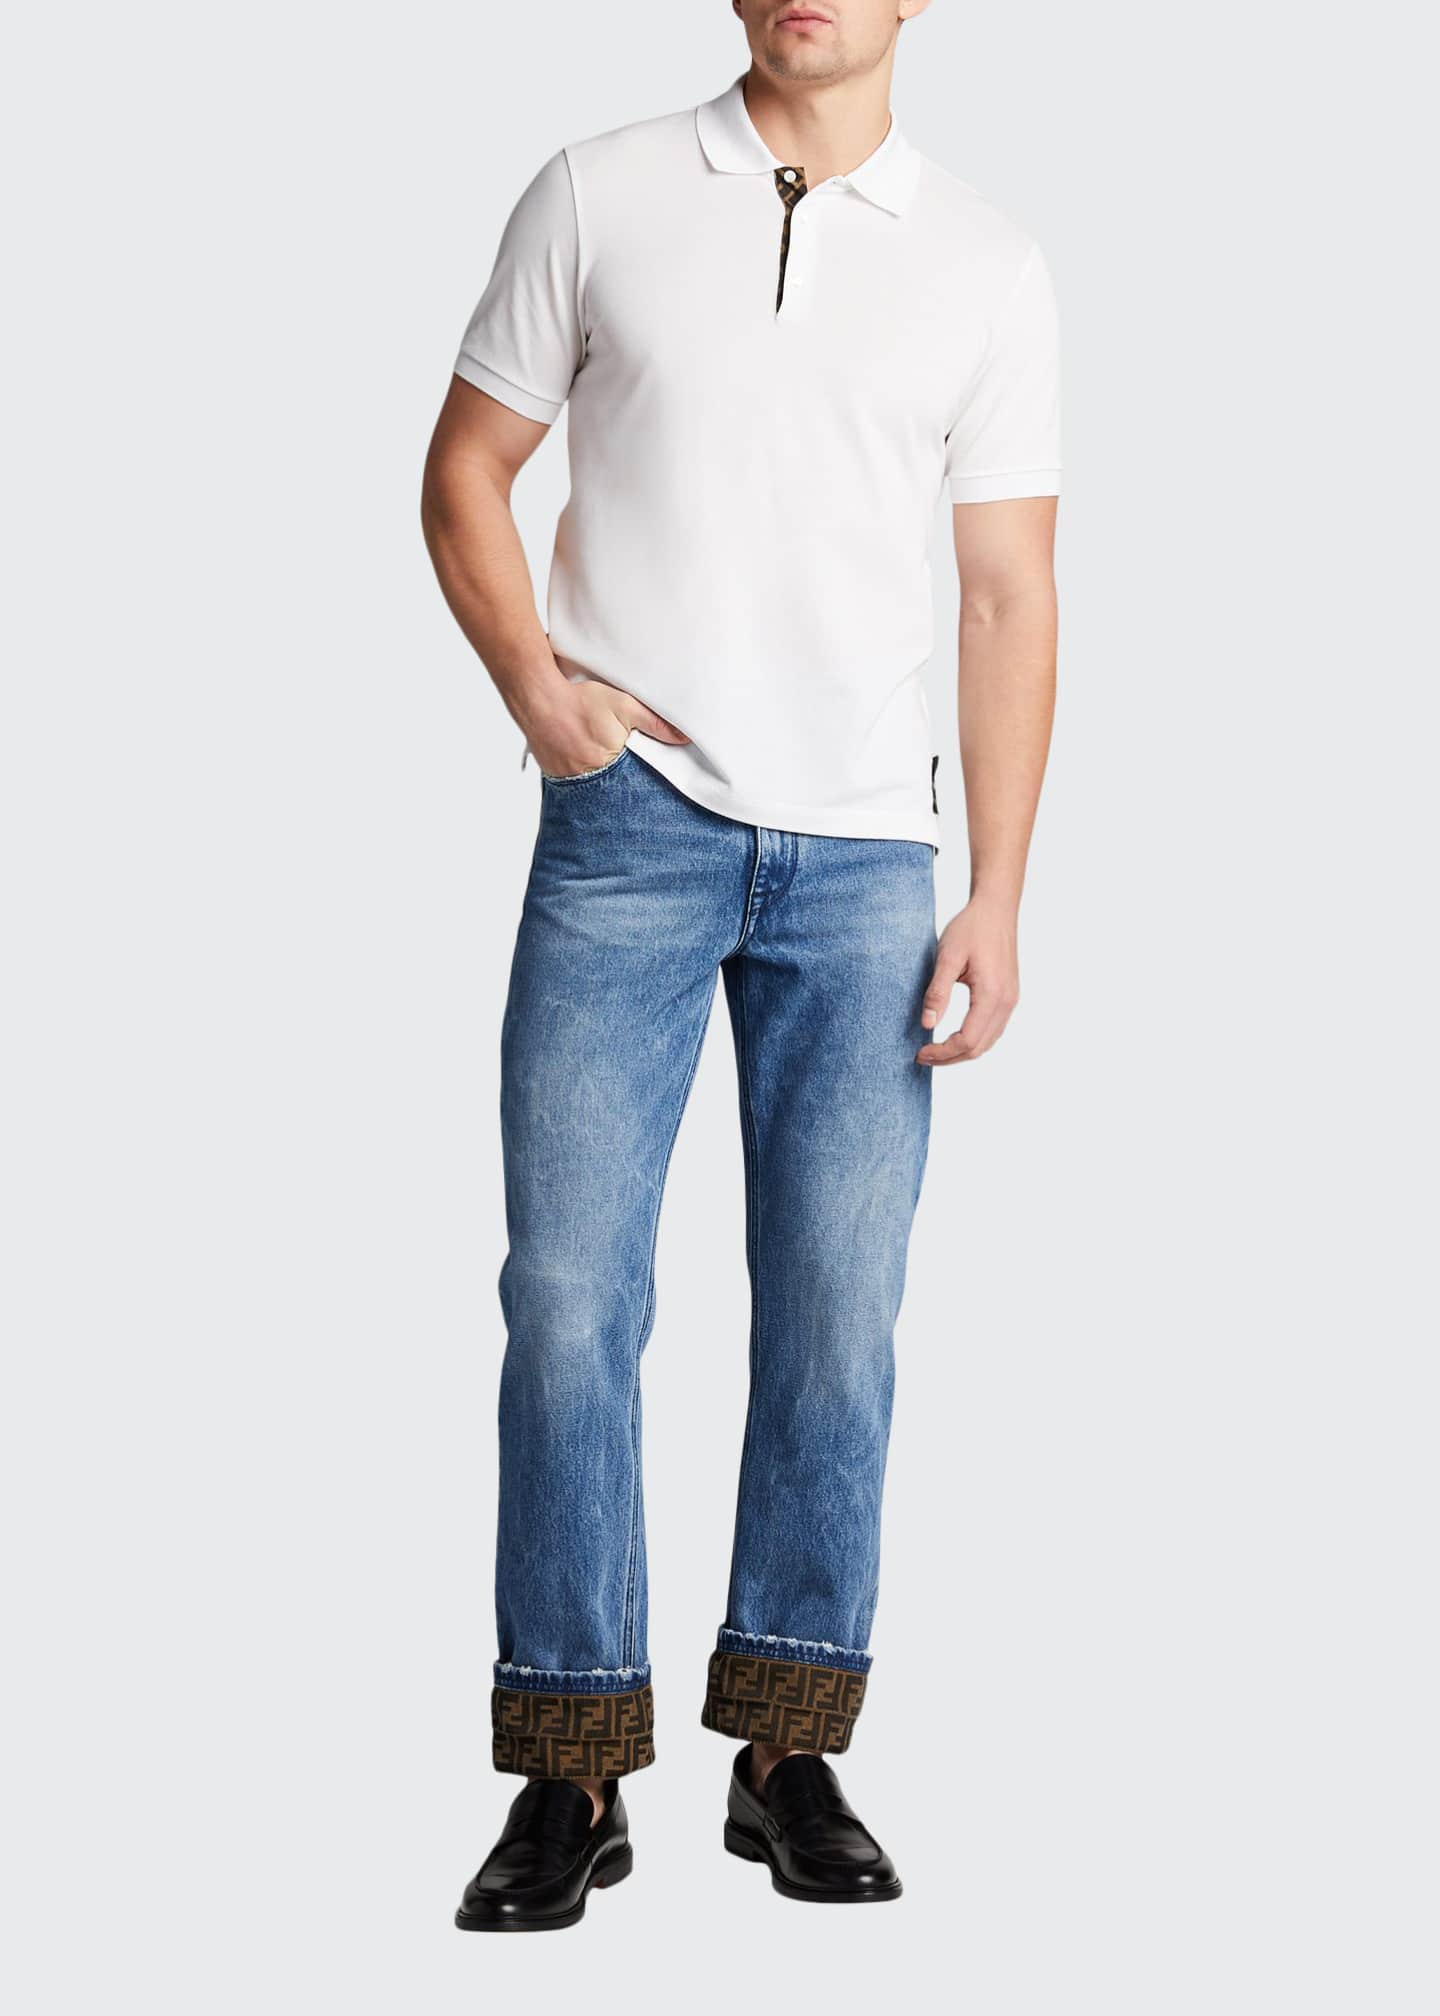 Fendi Men's Turn-Up FF-Cuff Straight-Leg Jeans